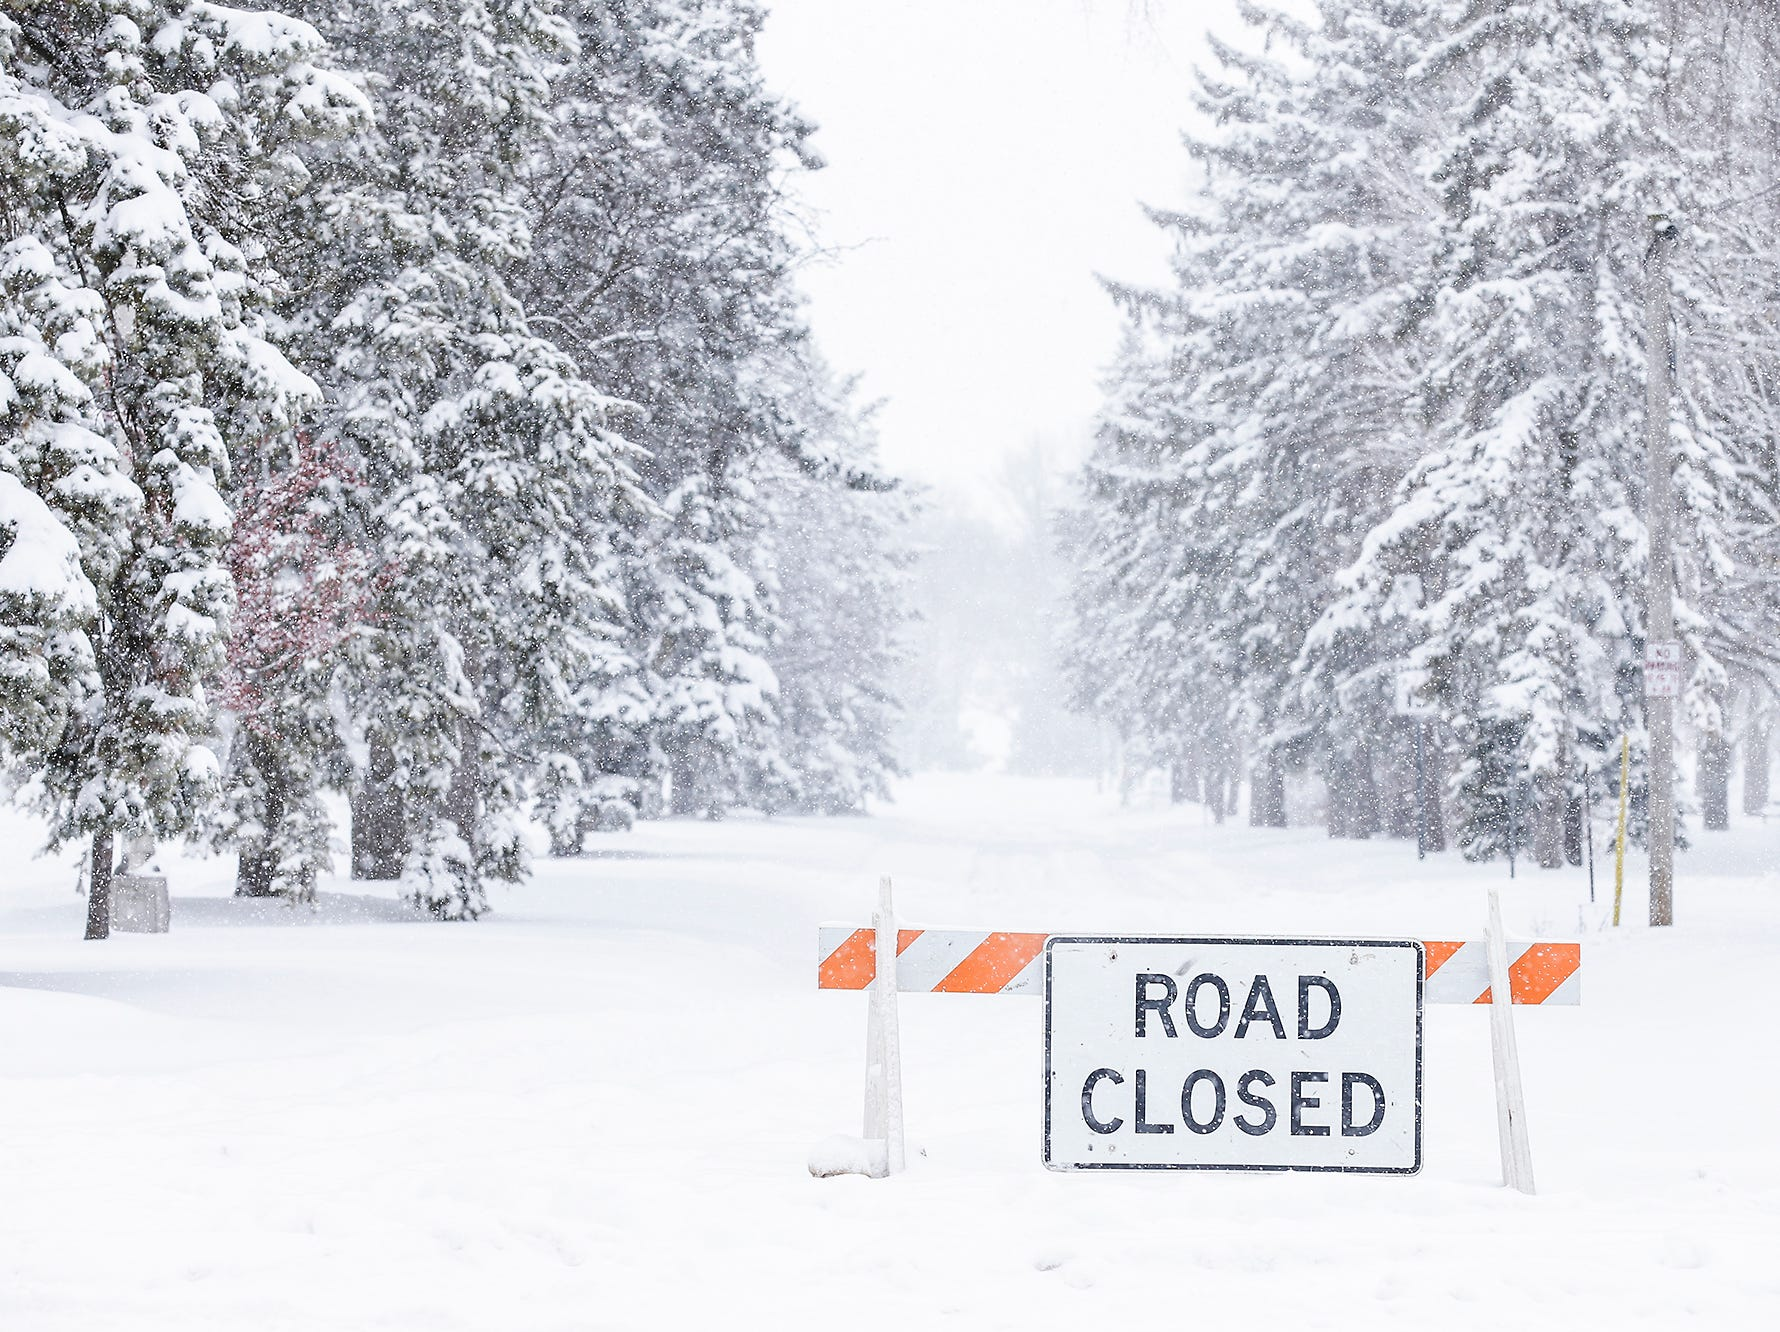 The nouth Main Street entrance to Lakeside Park is closed during a winter storm Tuesday, Feb. 12, 2019 in Fond du Lac, Wis. A winter storm warning was issued for the area.